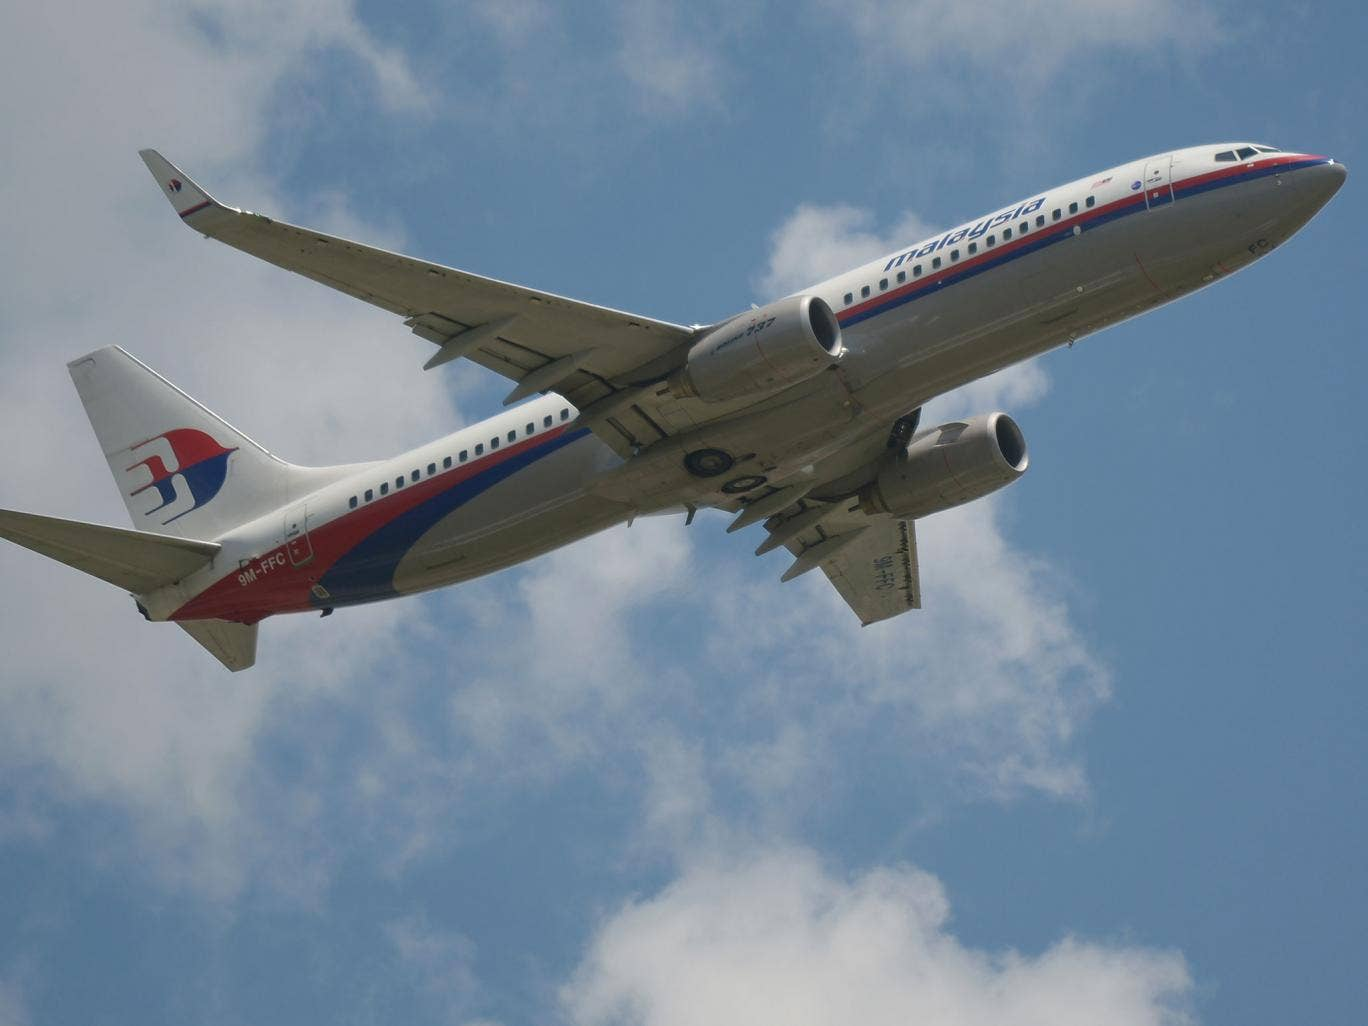 Malaysia Airlines has received a lot of criticism for choosing to fly over a war-torn area